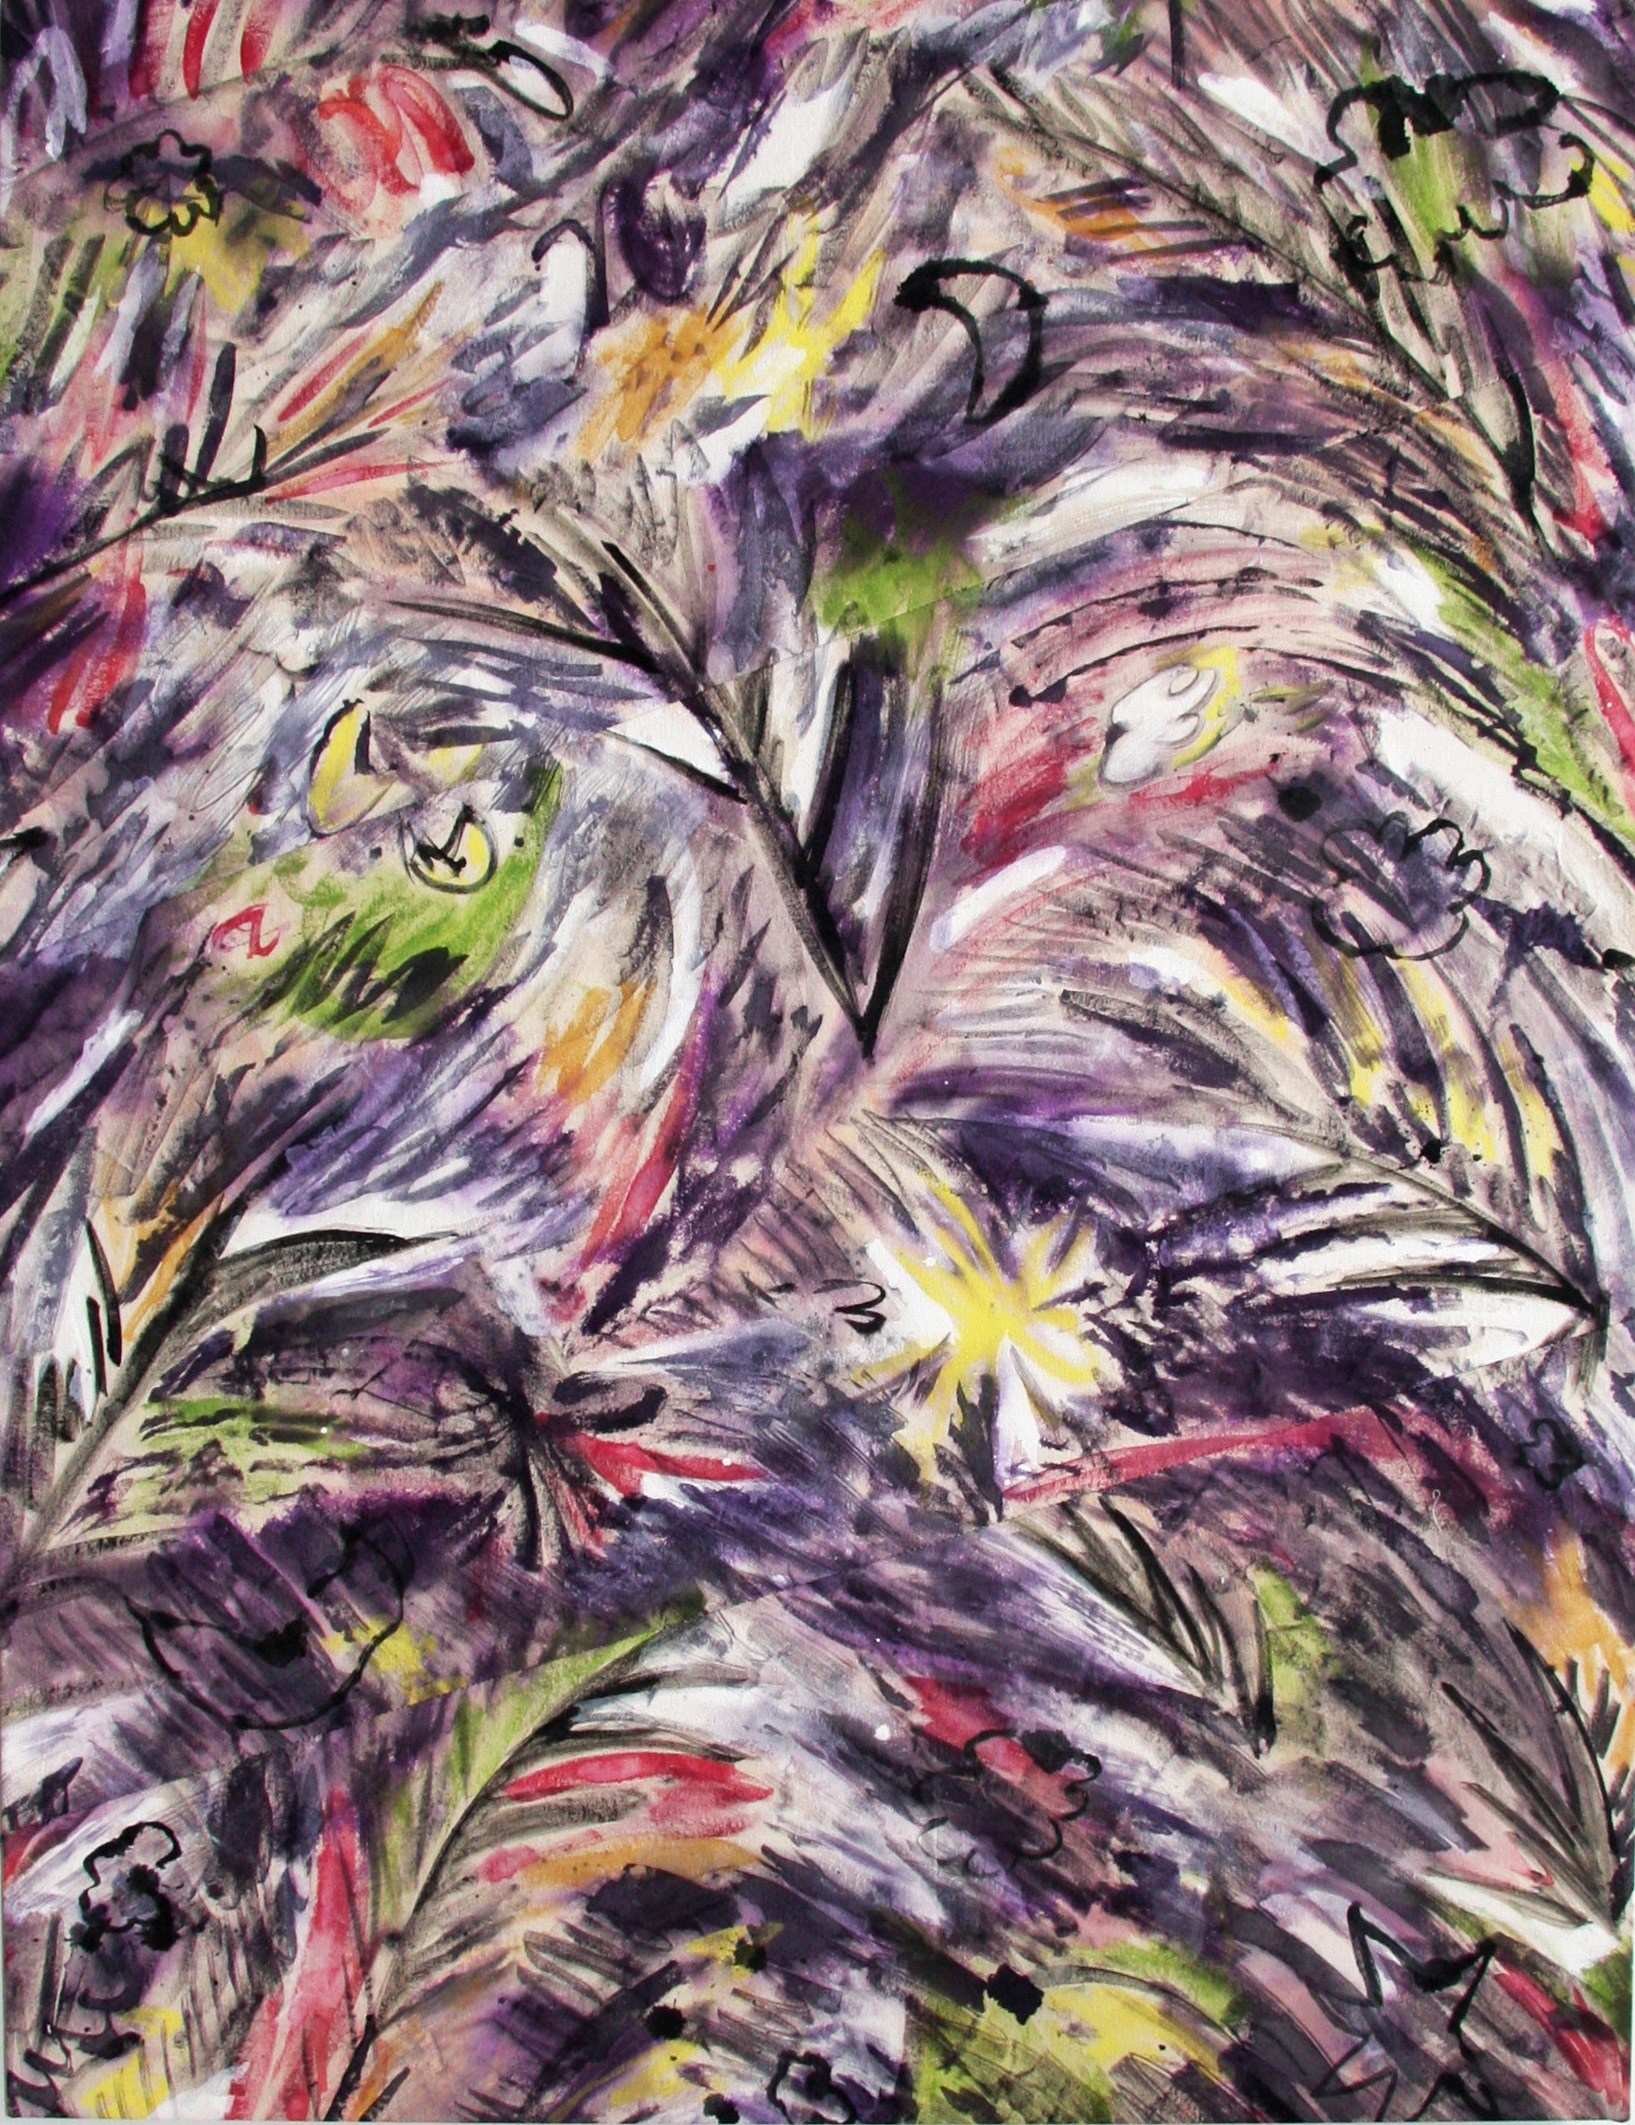 Meghan Petras, Tahiti, 2012, fabric paint on canvas, cut and sewn, 38 x 51 inche